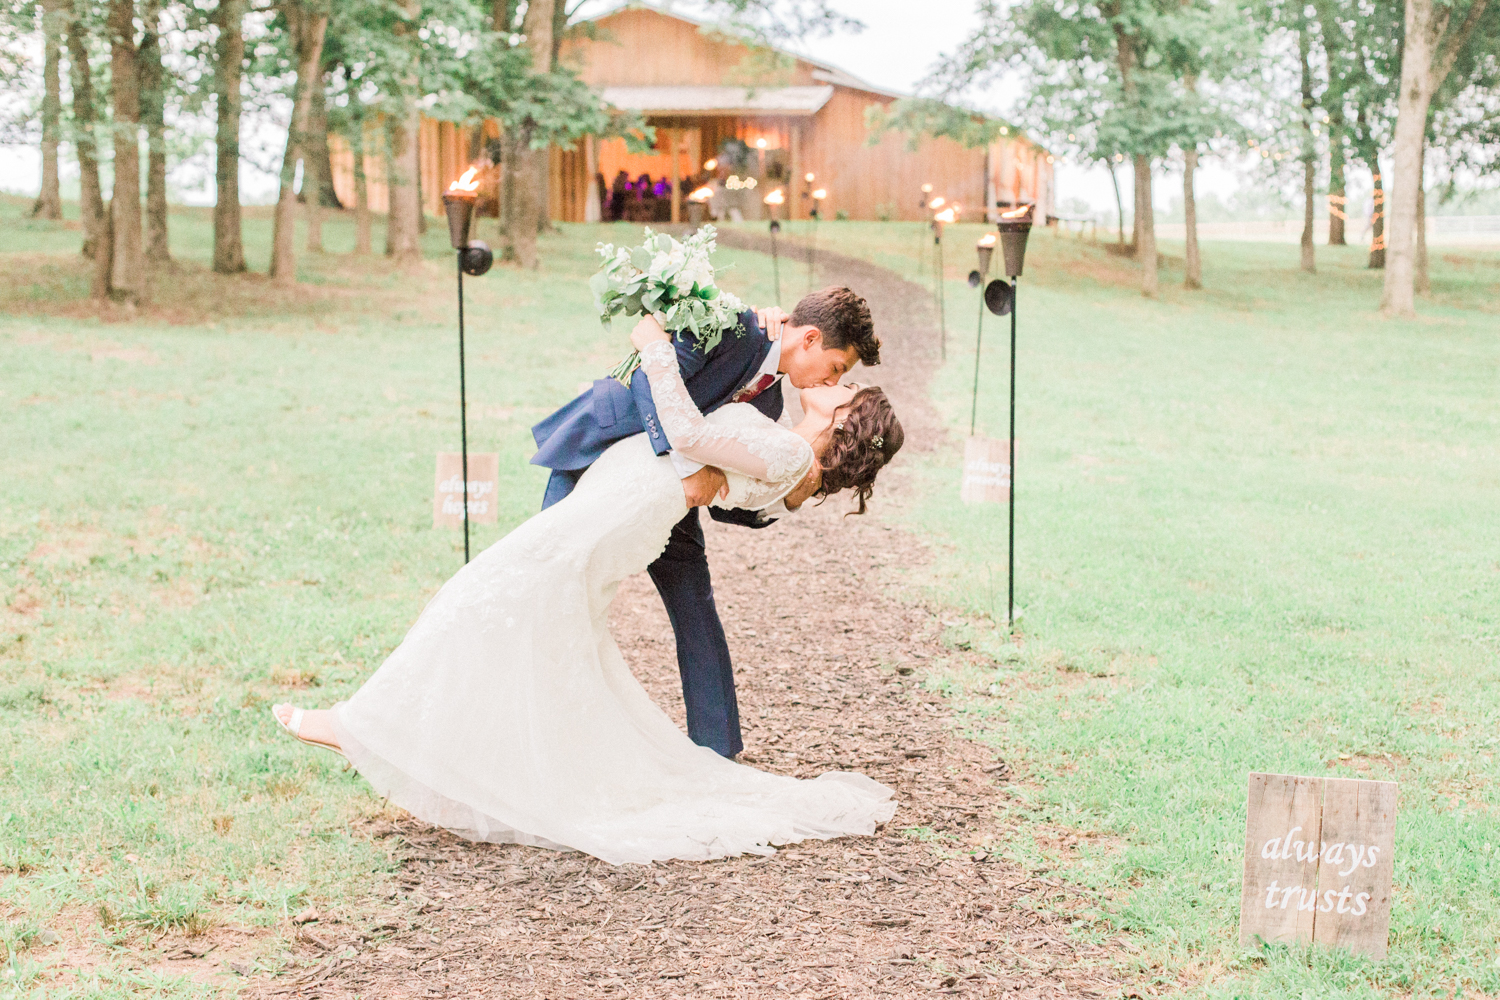 Bride and groom sharing a kiss. Summer, outdoor, barn wedding in north Georgia at Hays McDonald Farm in Jefferson, Georgia. Photo by Kesia Marie Photography - Fine Art Wedding Photographer.